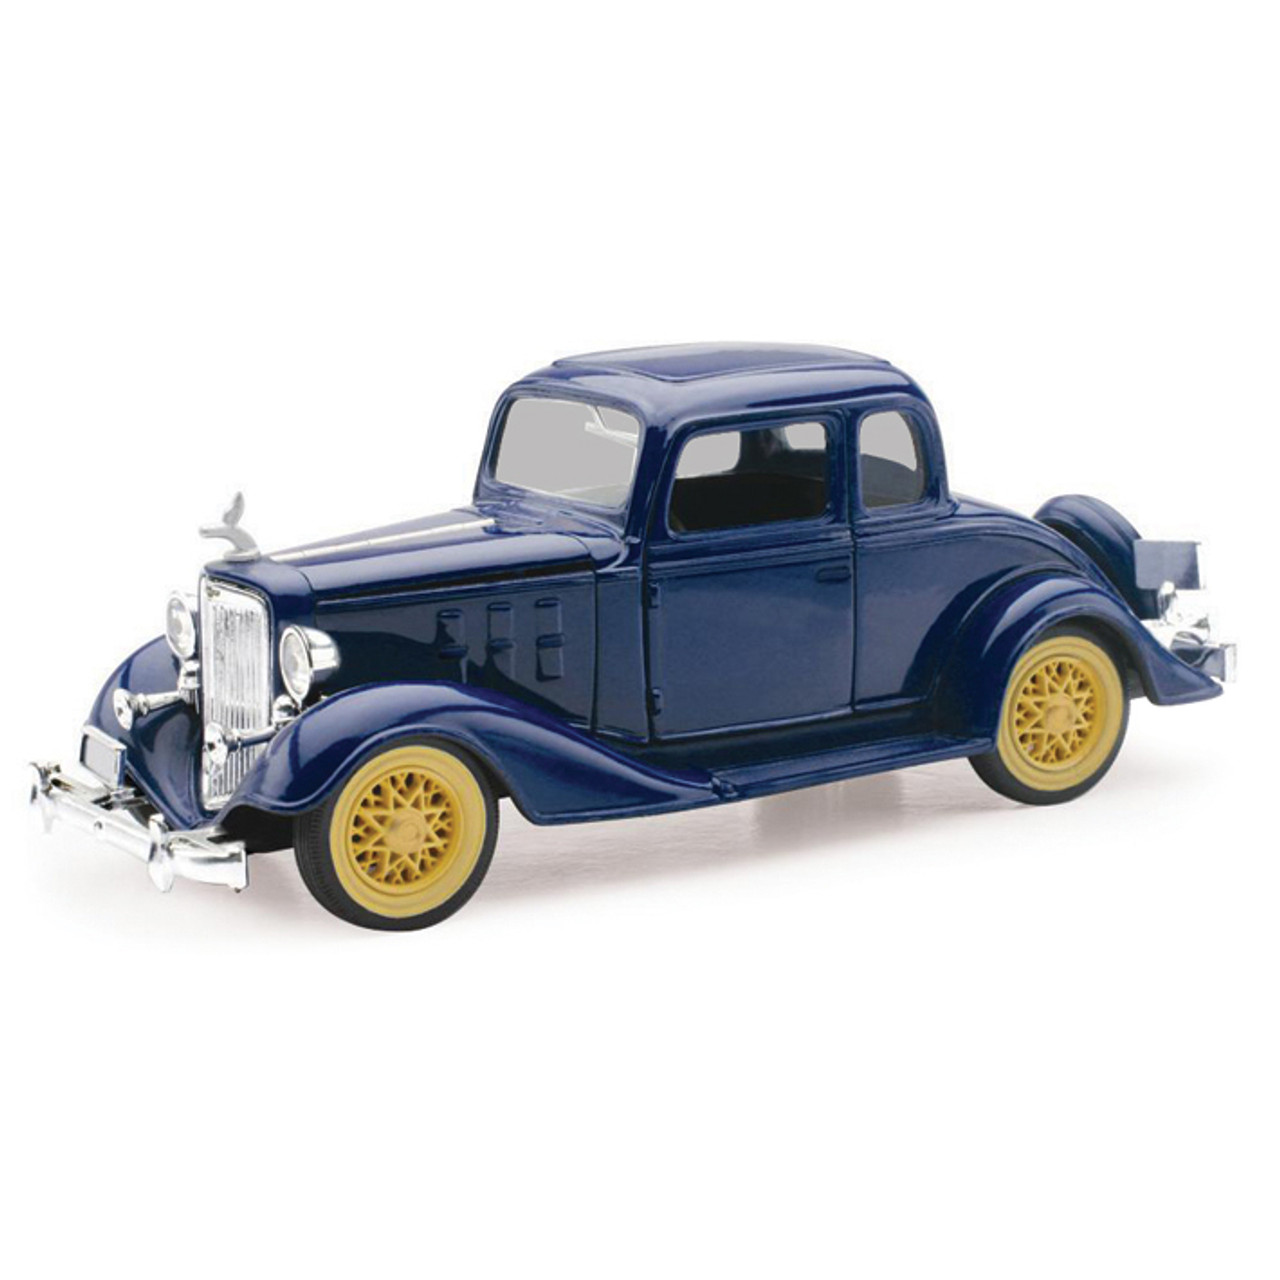 small resolution of 1933 chevrolet eagle coupe main image